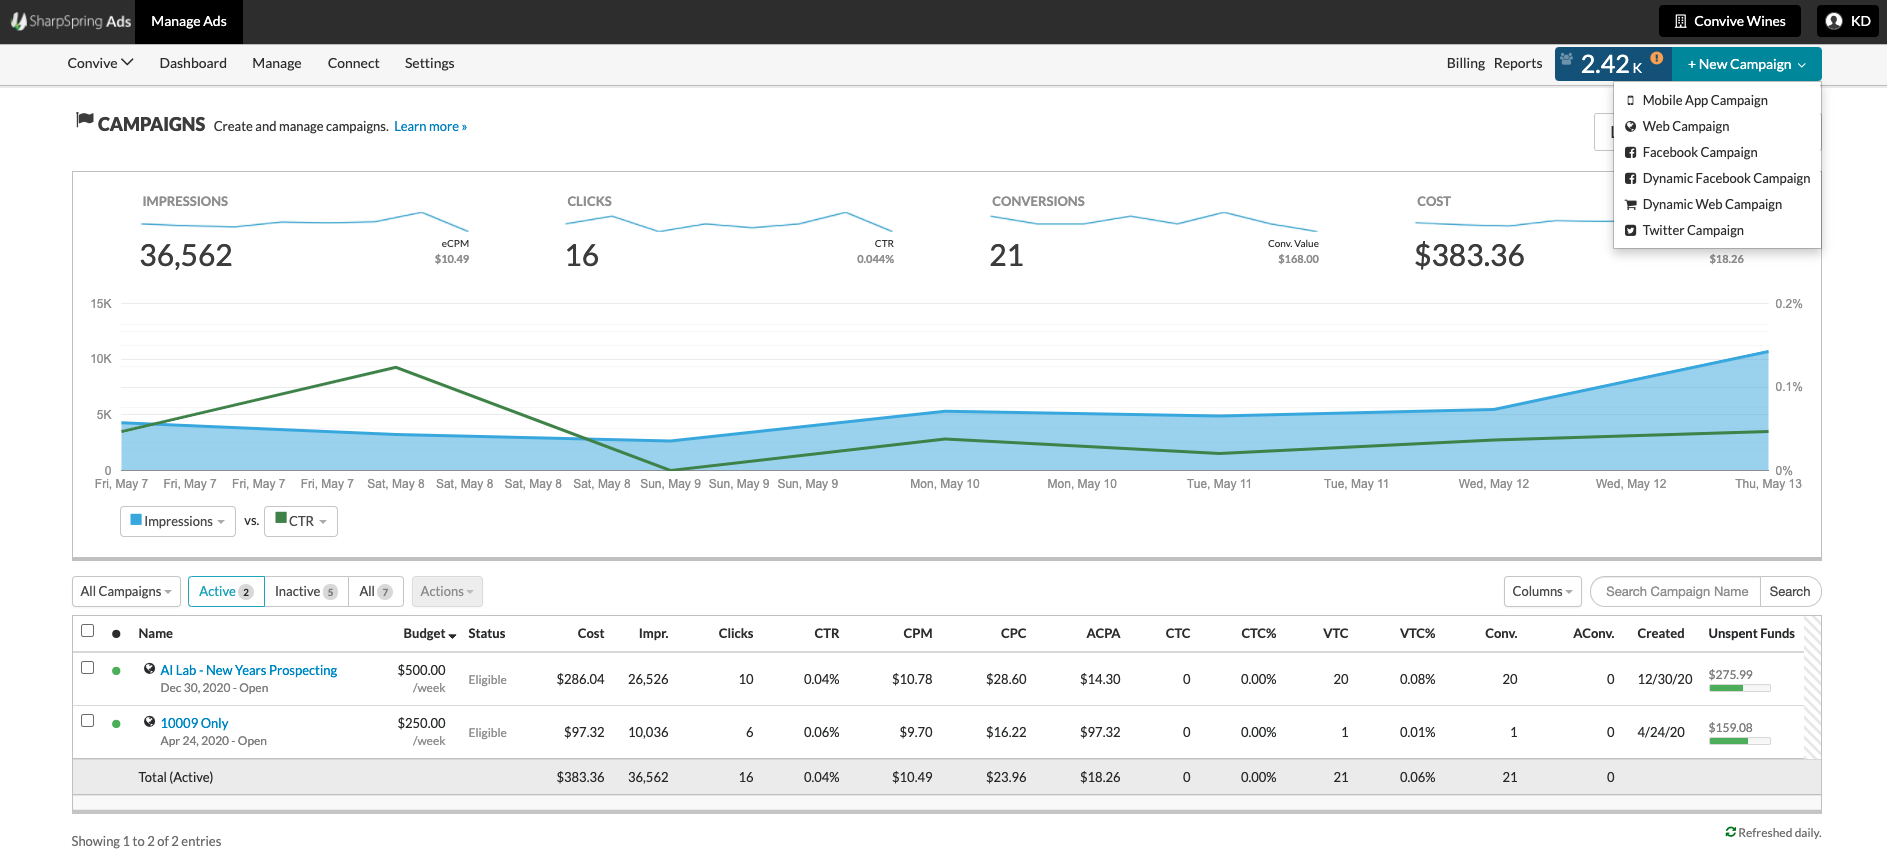 SharpSpring Ads Campaign Reporting Tools